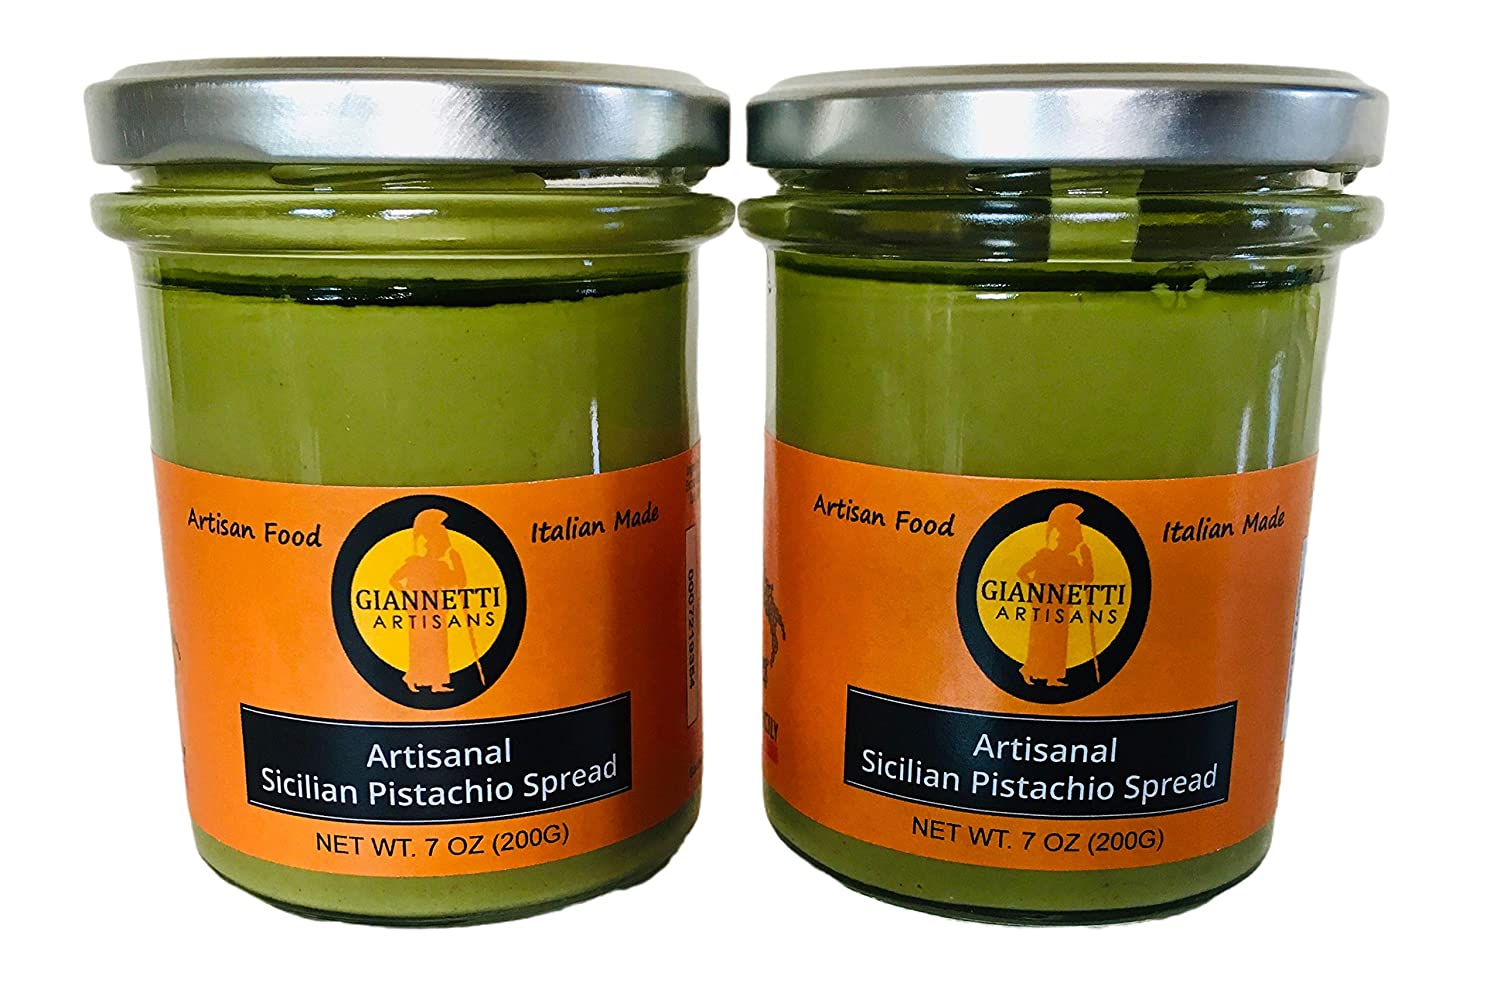 Giannetti Artisans Imported Sicilian Pistachio Spread with NO PALM OIL & 45% Sicilian Pistachio - 2 pack of 7.05 oz Jars